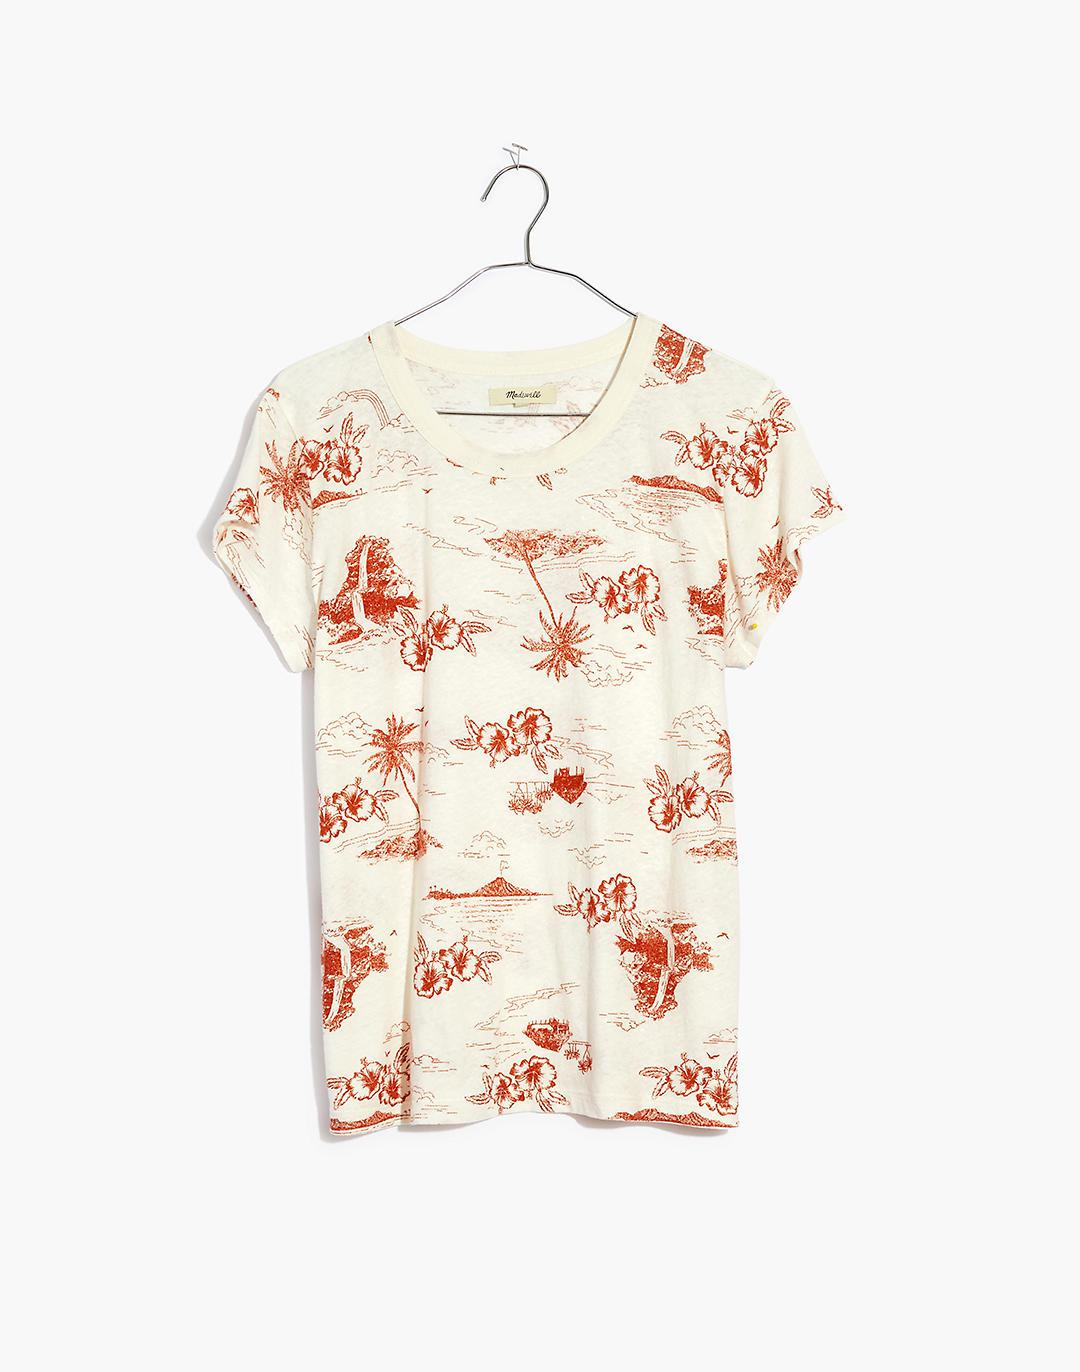 The Perfect Vintage Tee in Paradise Toile